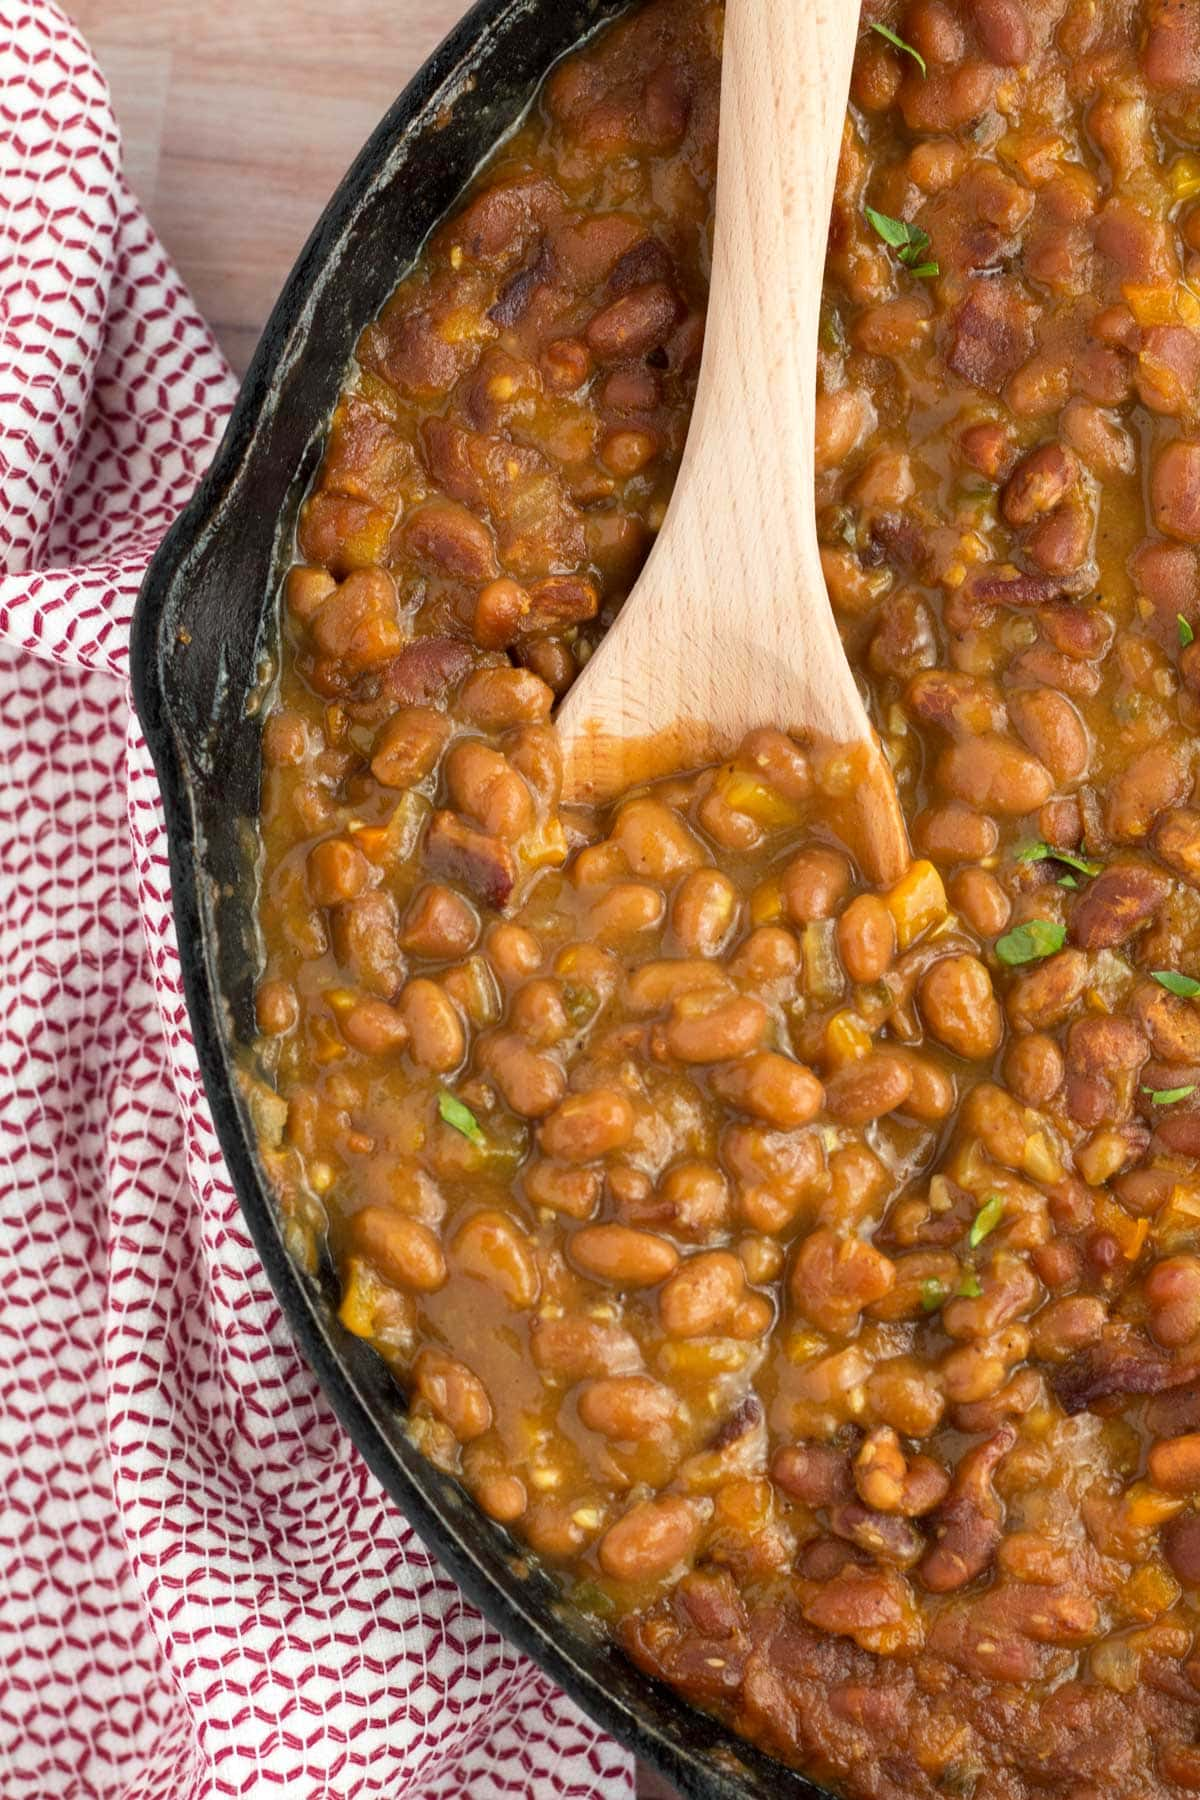 A towel wrapped around cast iron skillet full of Easy Baked Beans (using canned beans).